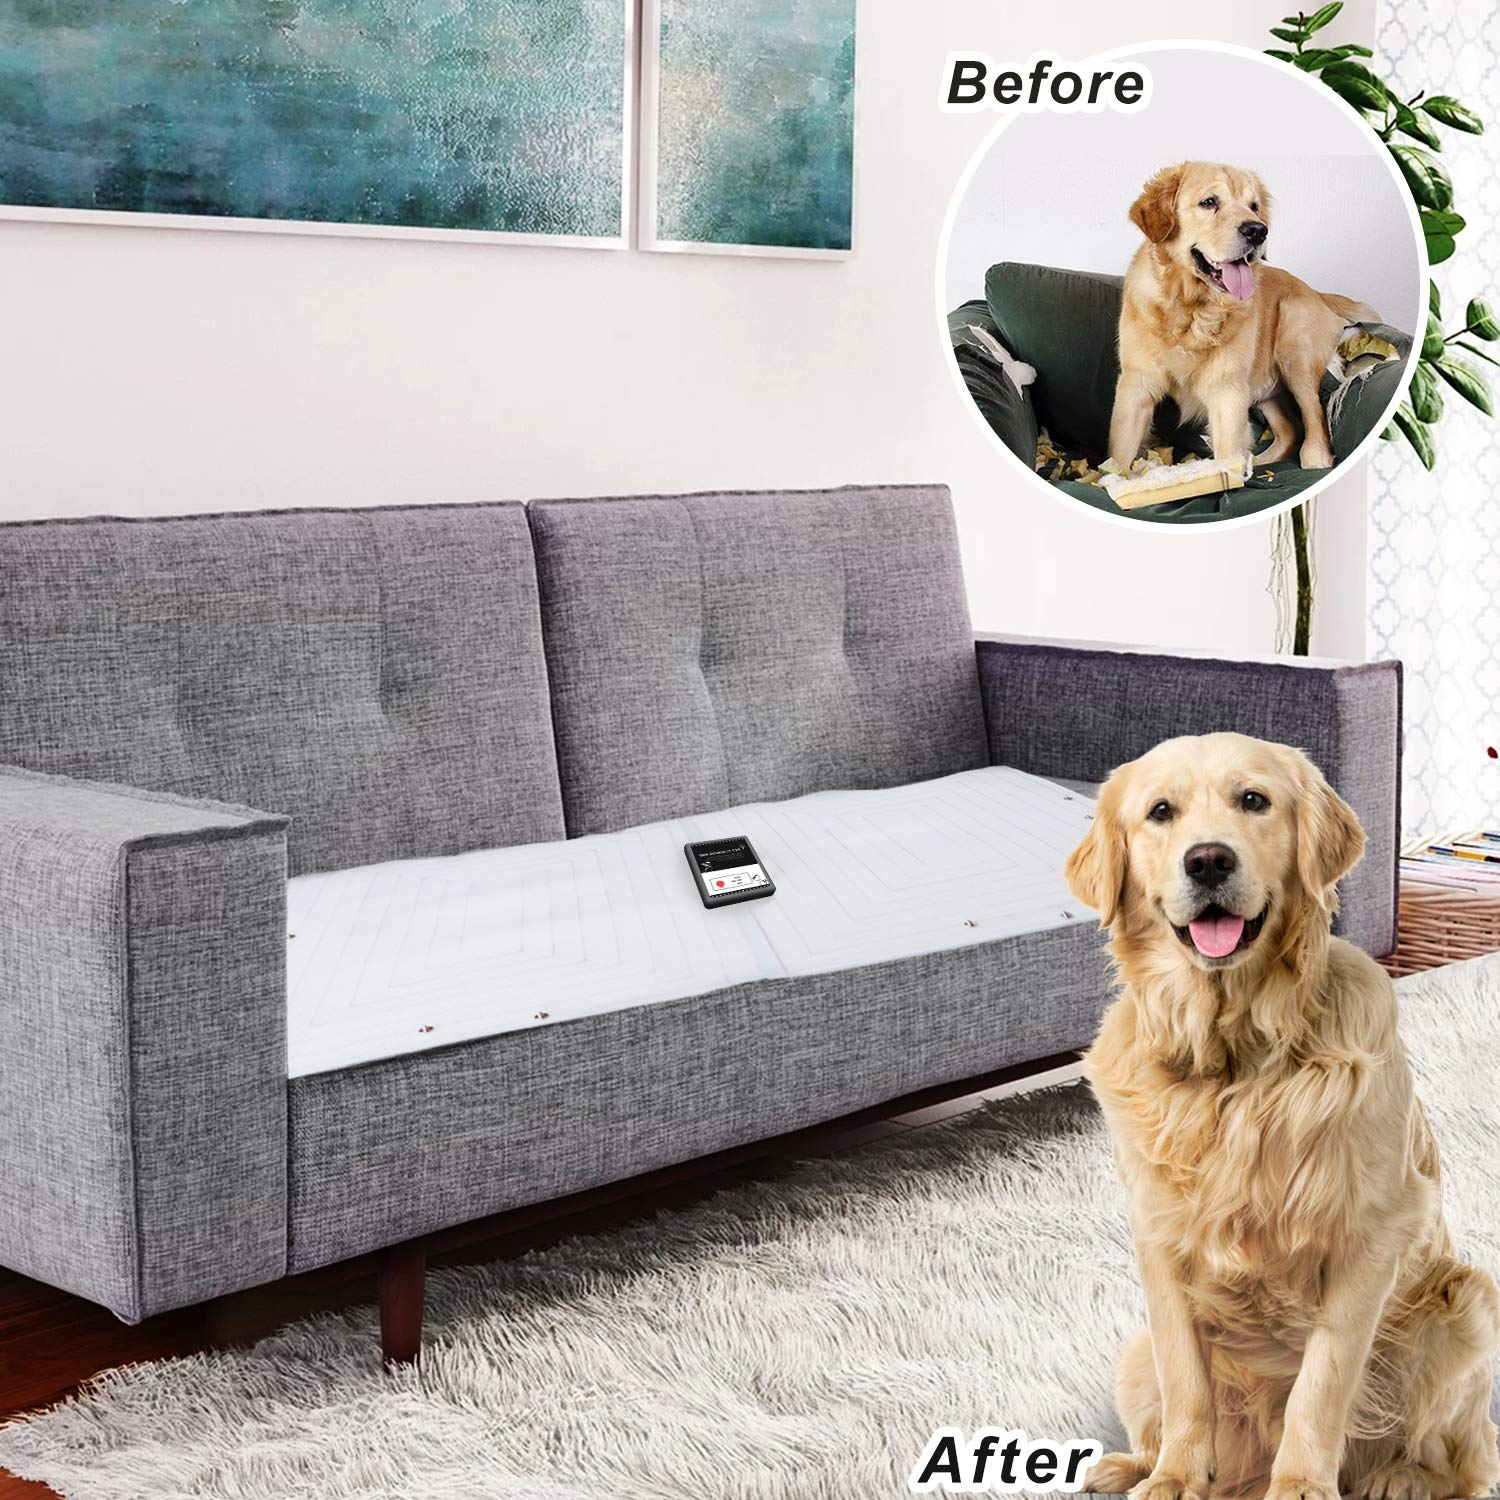 Pet Scat Cat Mat, Pet Training Mat for Dogs Cats, Dog Sofa Scram, Couch Protectors from Dogs Keep Dog Off Furniture Couch Pet Barrier for Off-Limit Areas, Indoor Scat Shock Mat, 2 Pieces for One Set